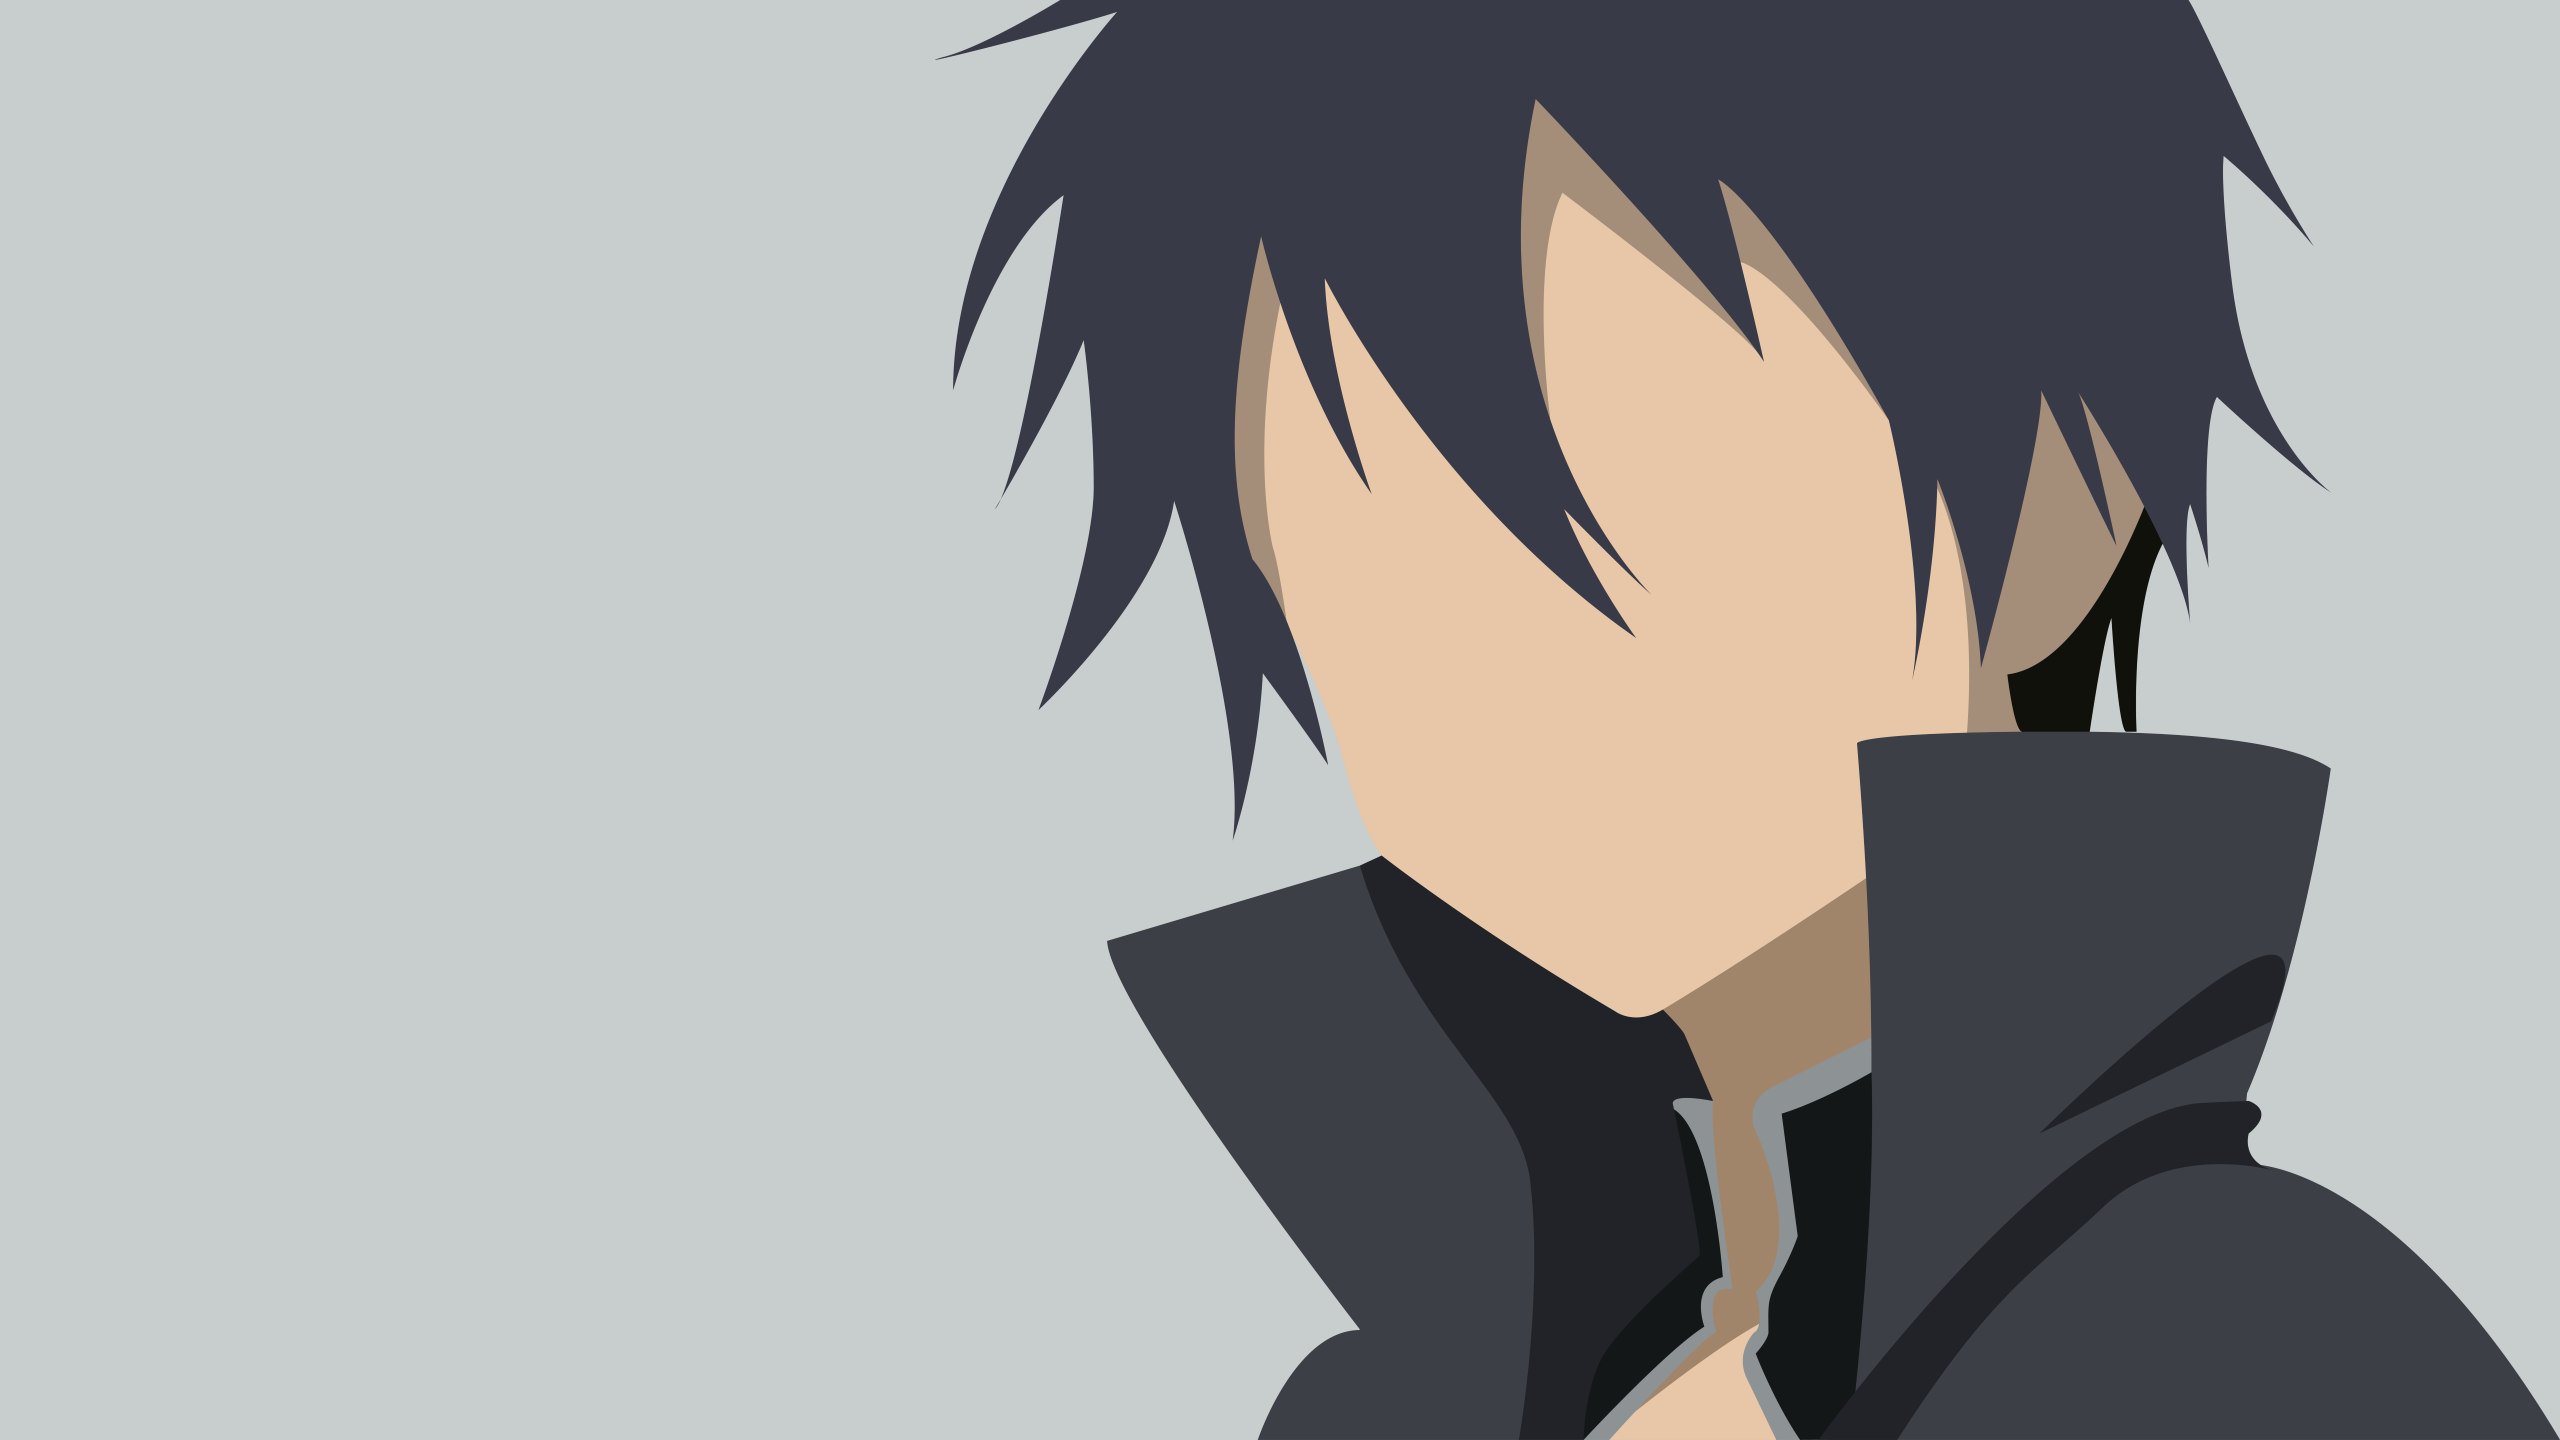 Anime Vector Wallpapers - Top Free Anime Vector Backgrounds - WallpaperAccess